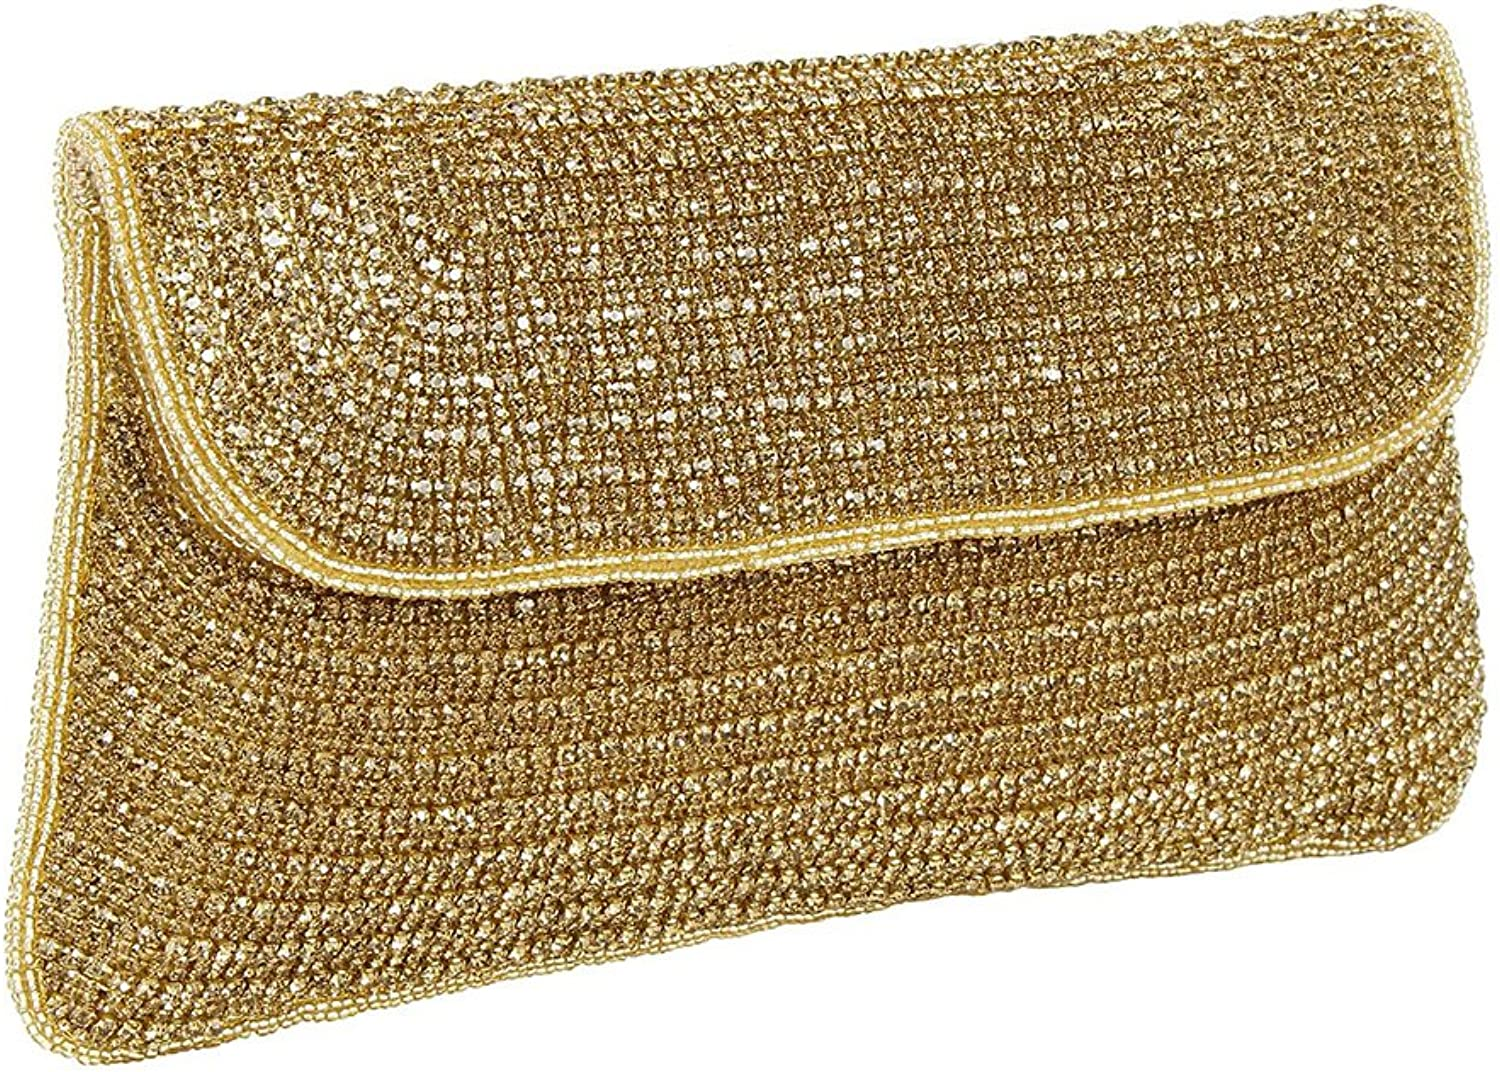 Purse Collection Gorgeous Traditional golden Colour Handmade Beaded Clutch Purses For Women's